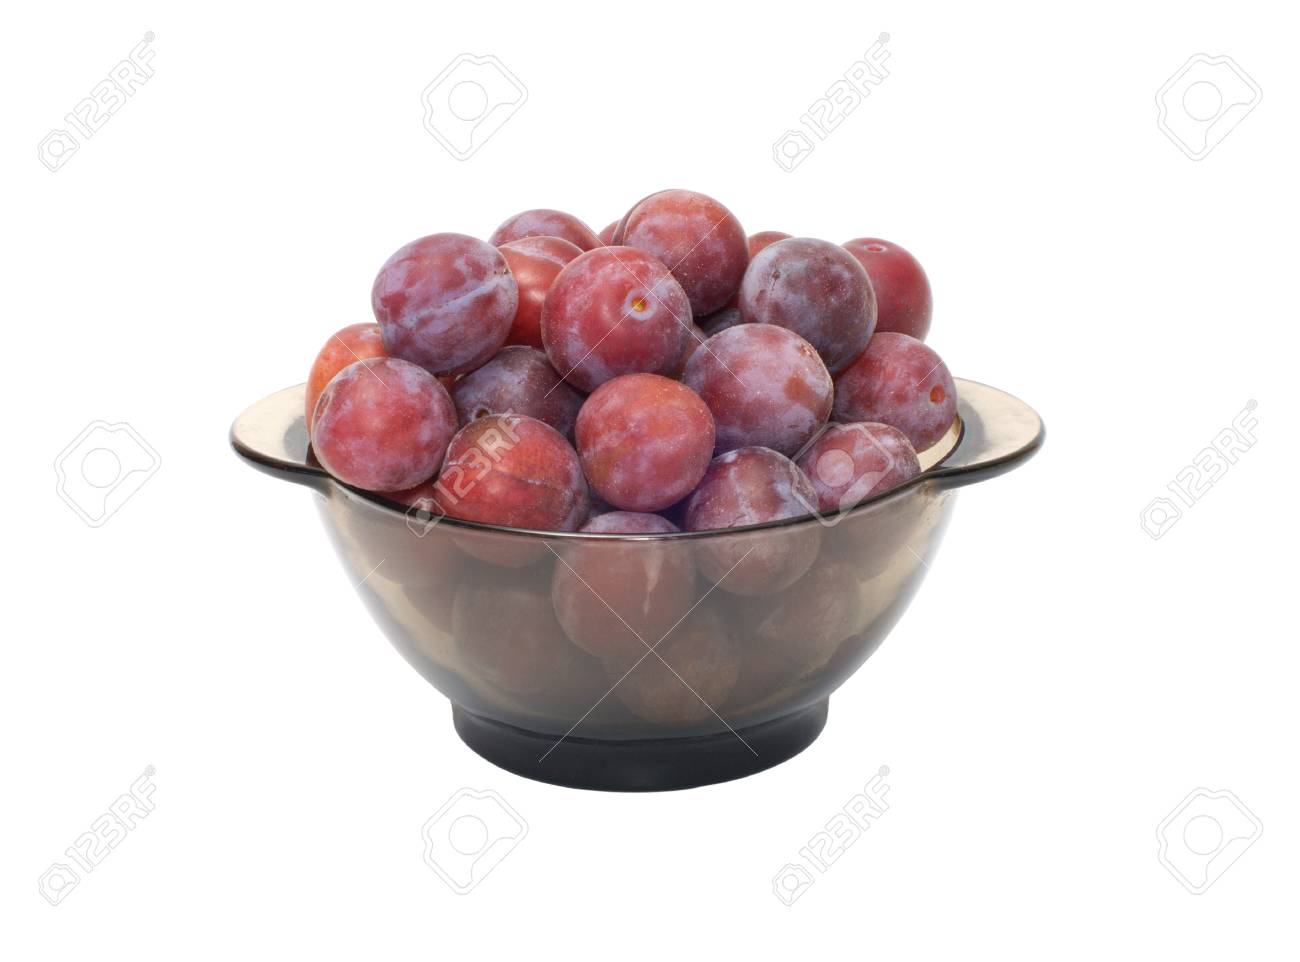 Ripe plums on a plate isolated on a white background. Stock Photo - 10443601